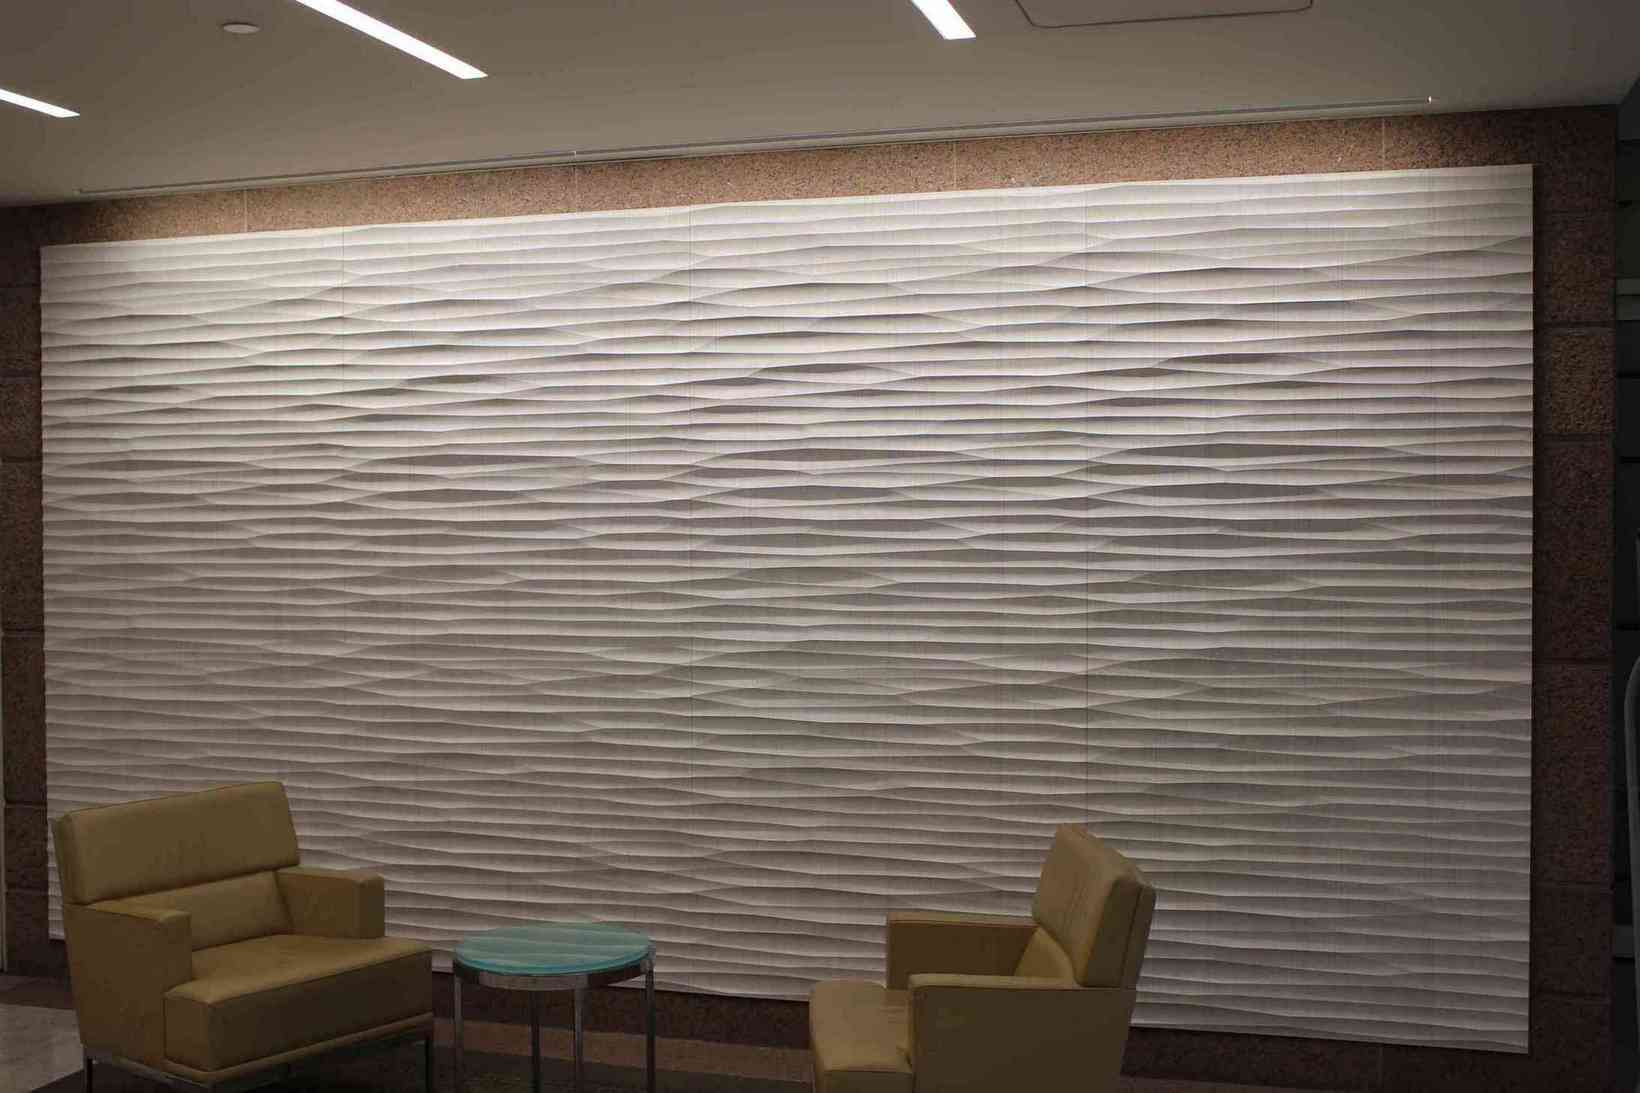 Wall covering decor ideasdecor ideas for Wallcovering ideas